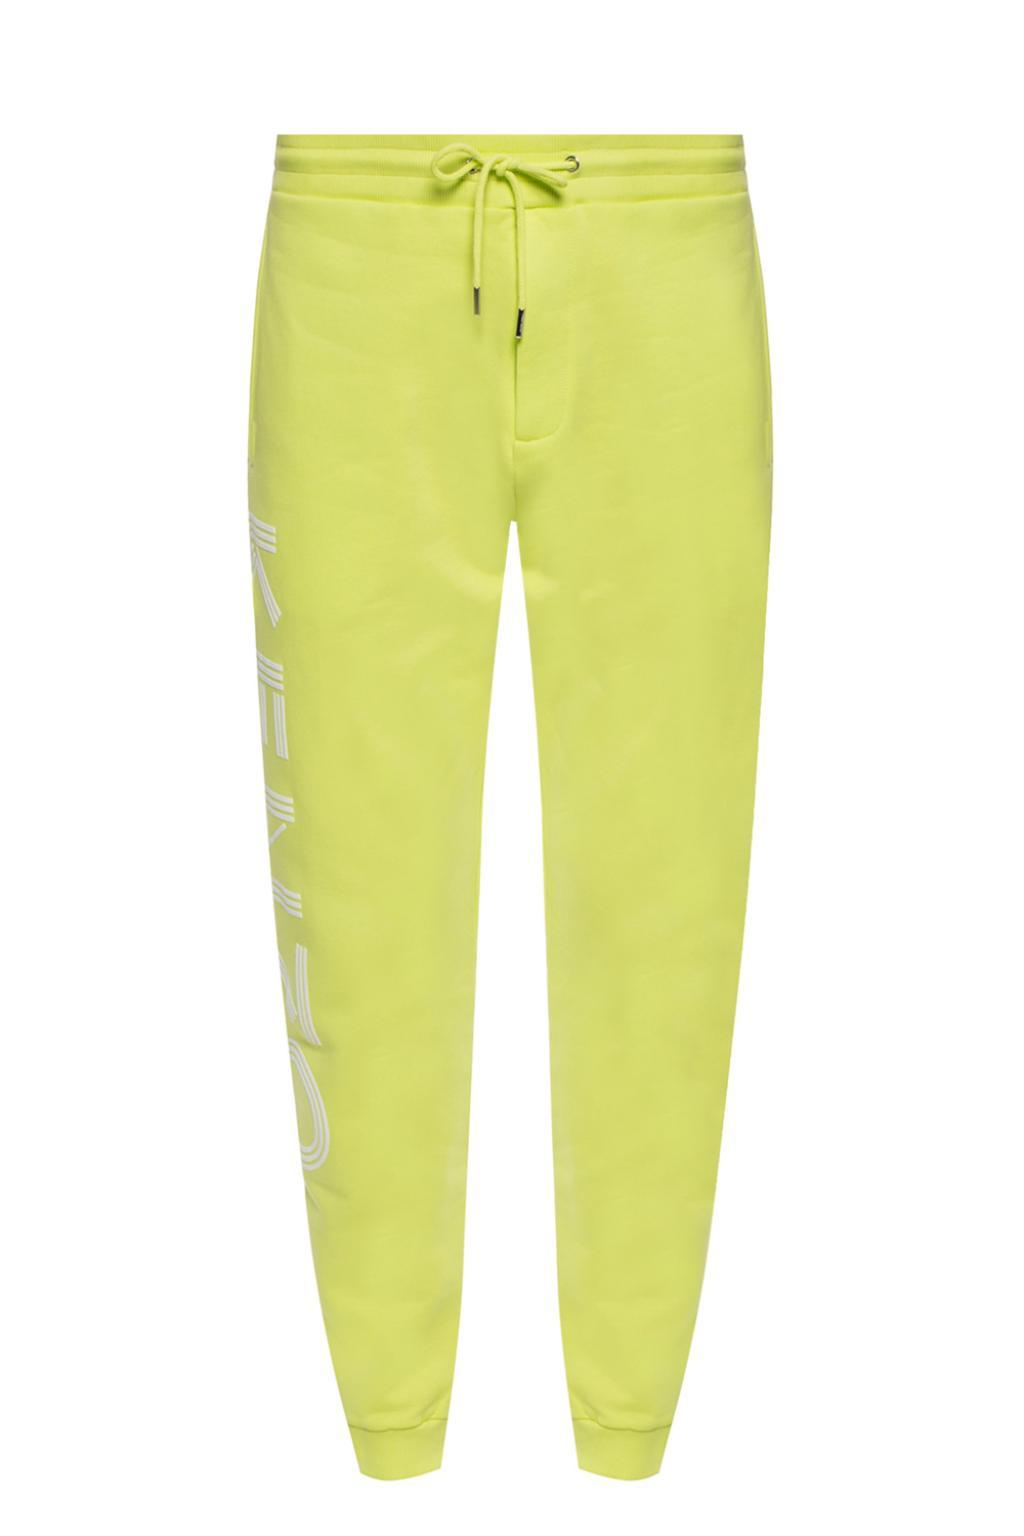 789c08ce2b22 Lyst - KENZO Branded Sweatpants in Yellow for Men